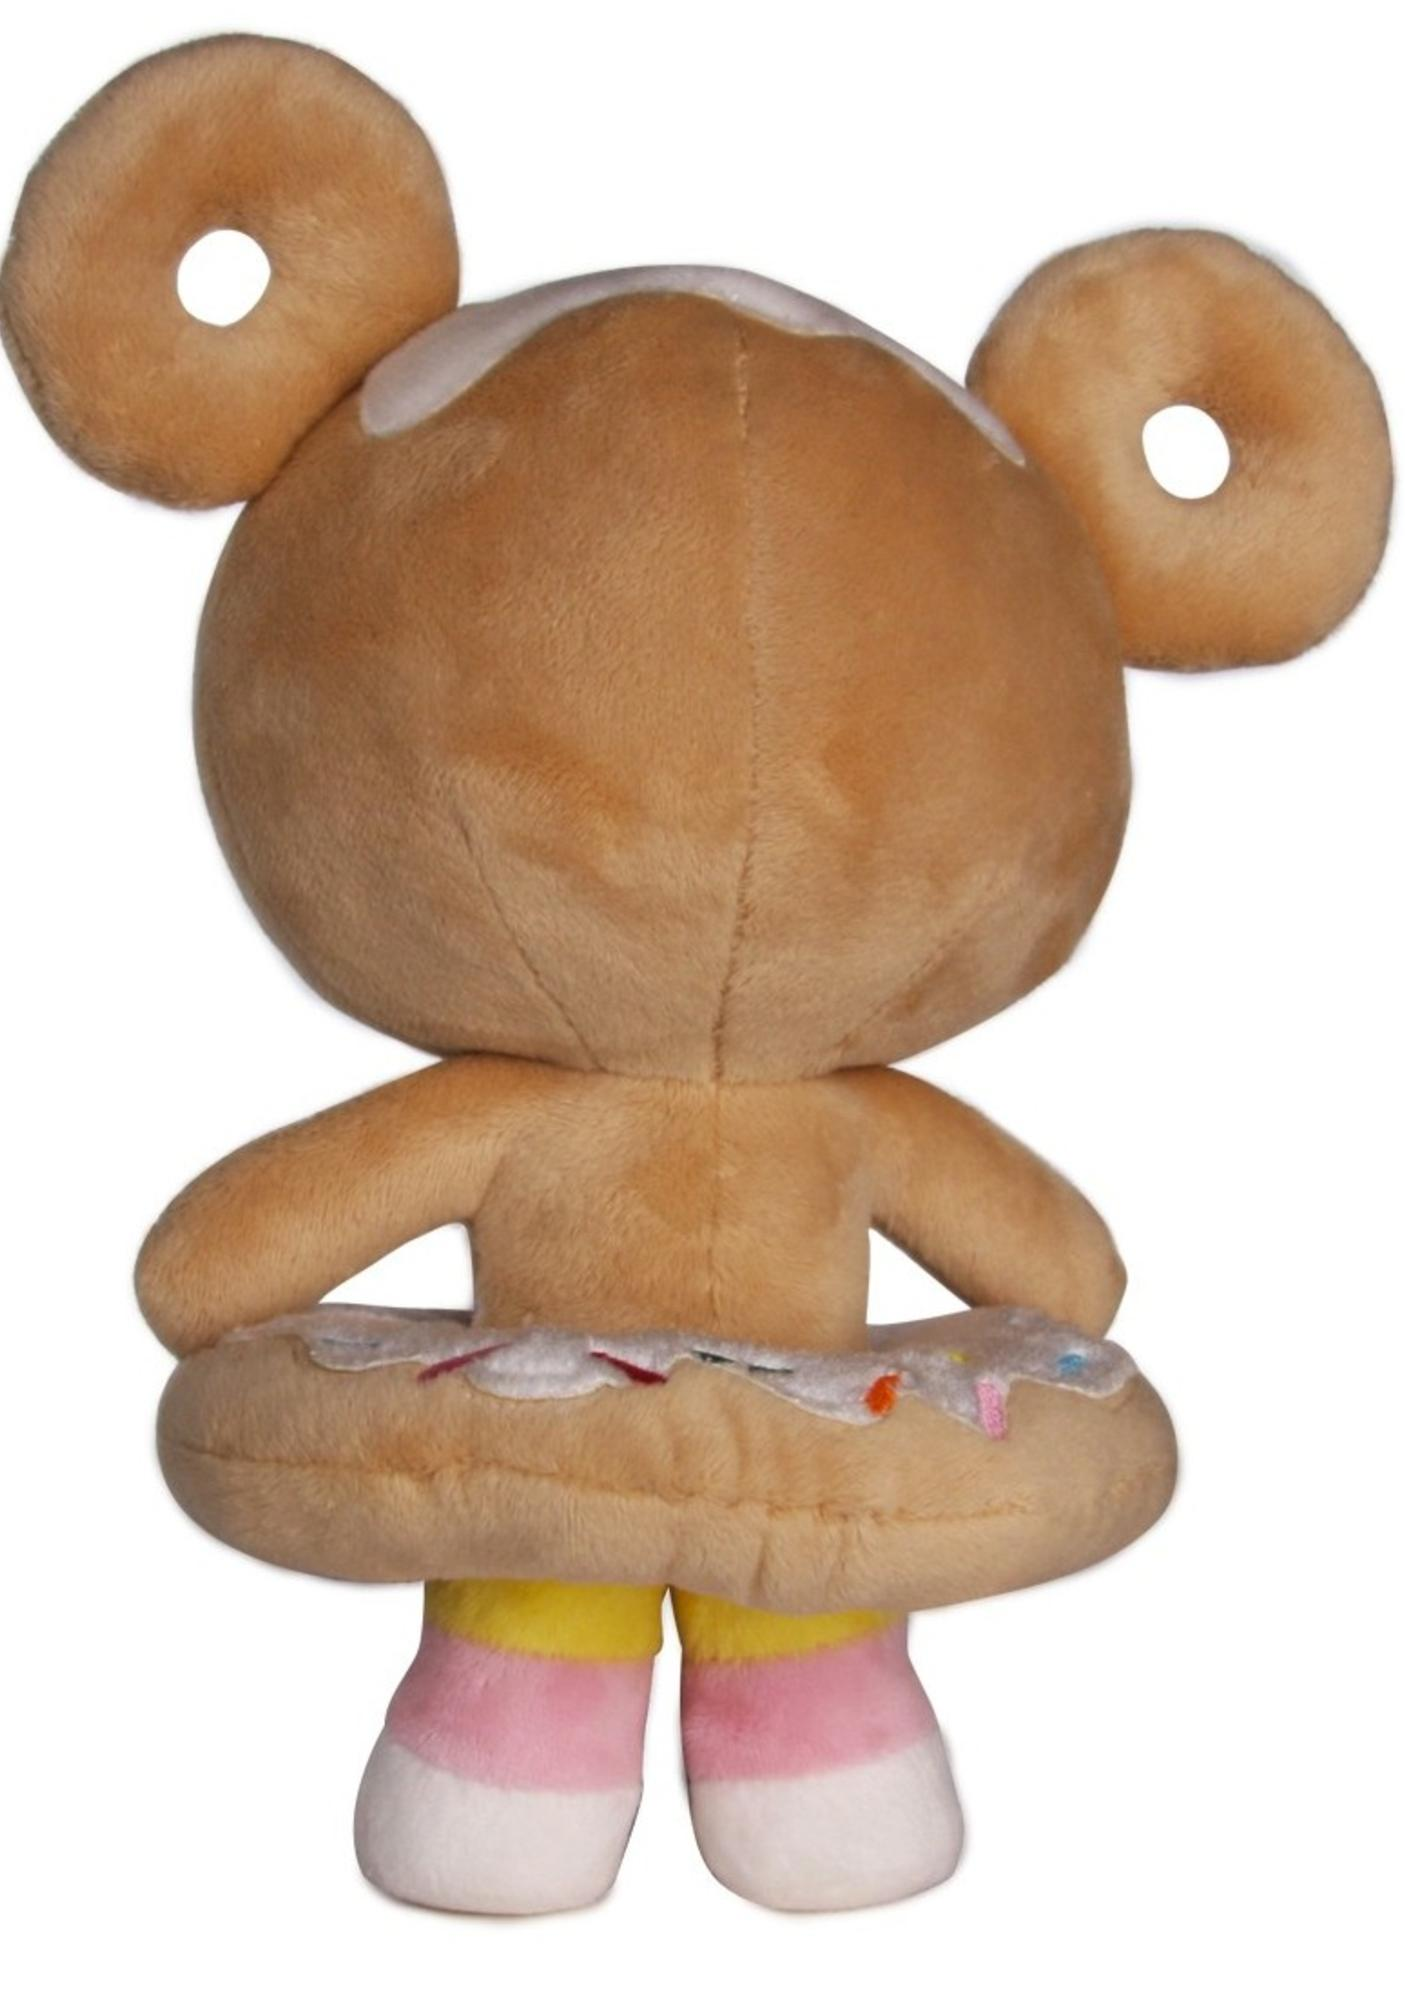 Tokidoki Donutella Plush Toy